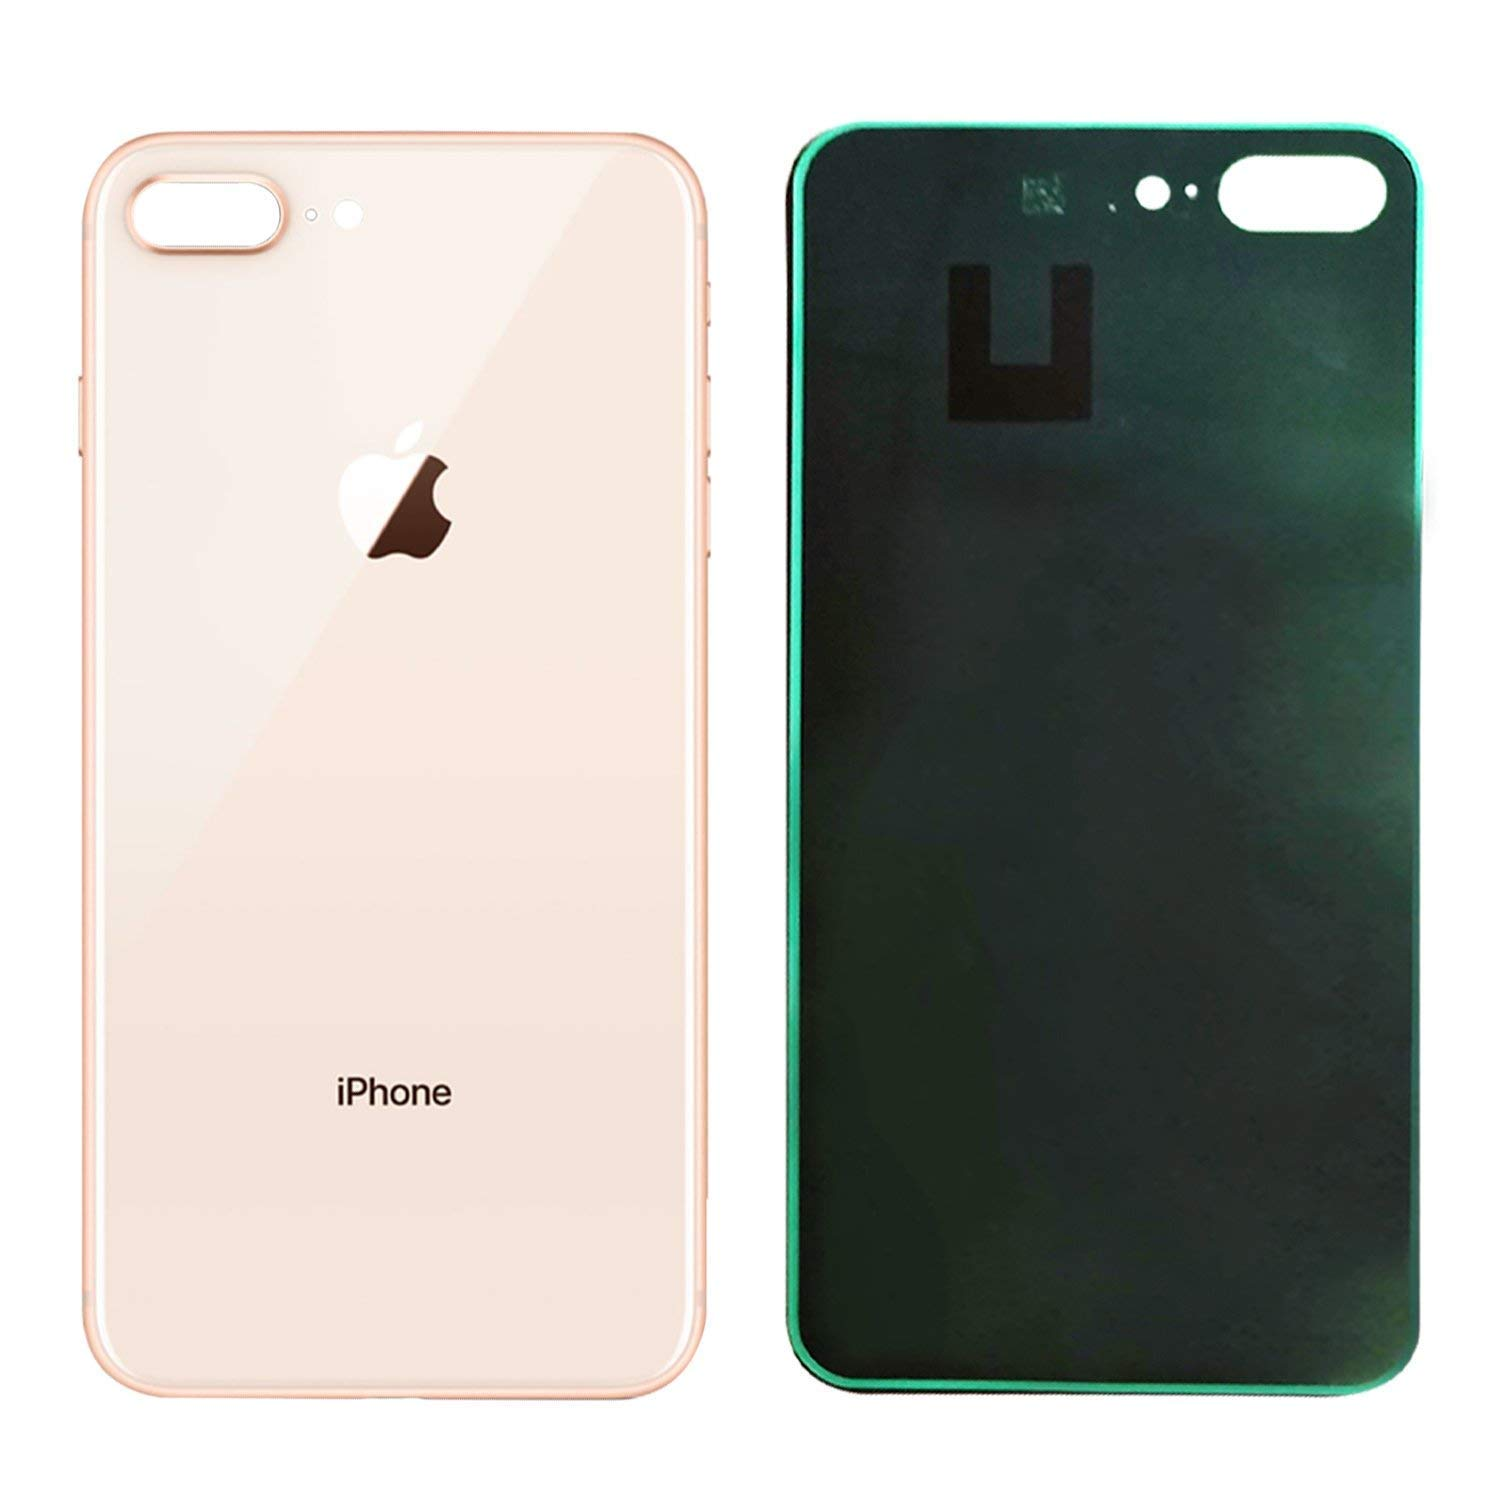 uk availability 75213 bf1e1 Apple iPhone 8 Plus Replacement Back Glass Cover Back Battery Door  w/Pre-Installed Adhesive,Best Version Apple iPhone 8 Plus All Models OEM ...